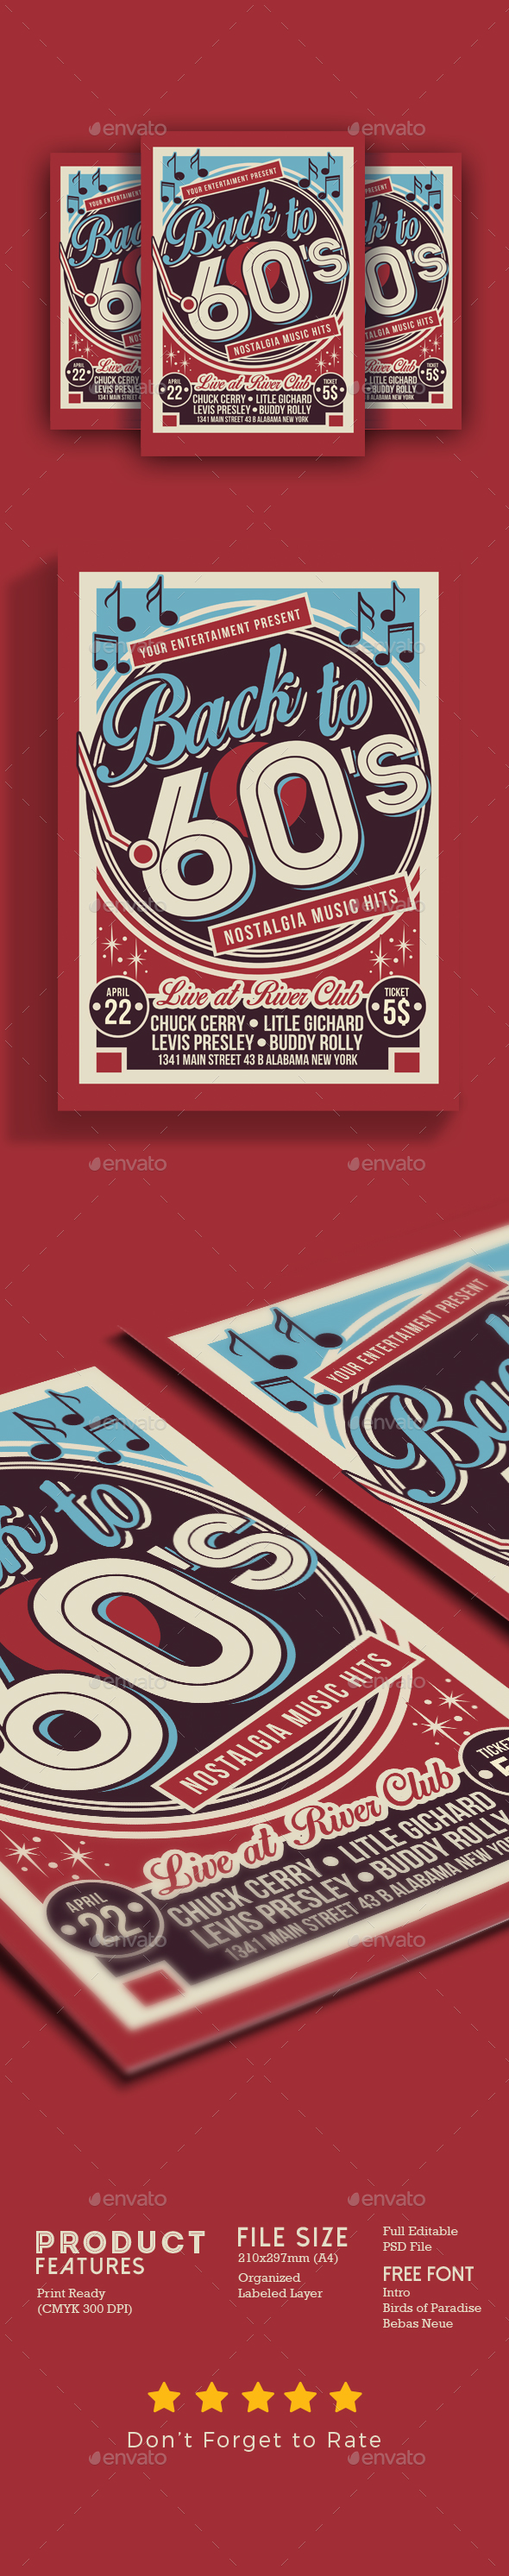 Vintage Music Event - Events Flyers